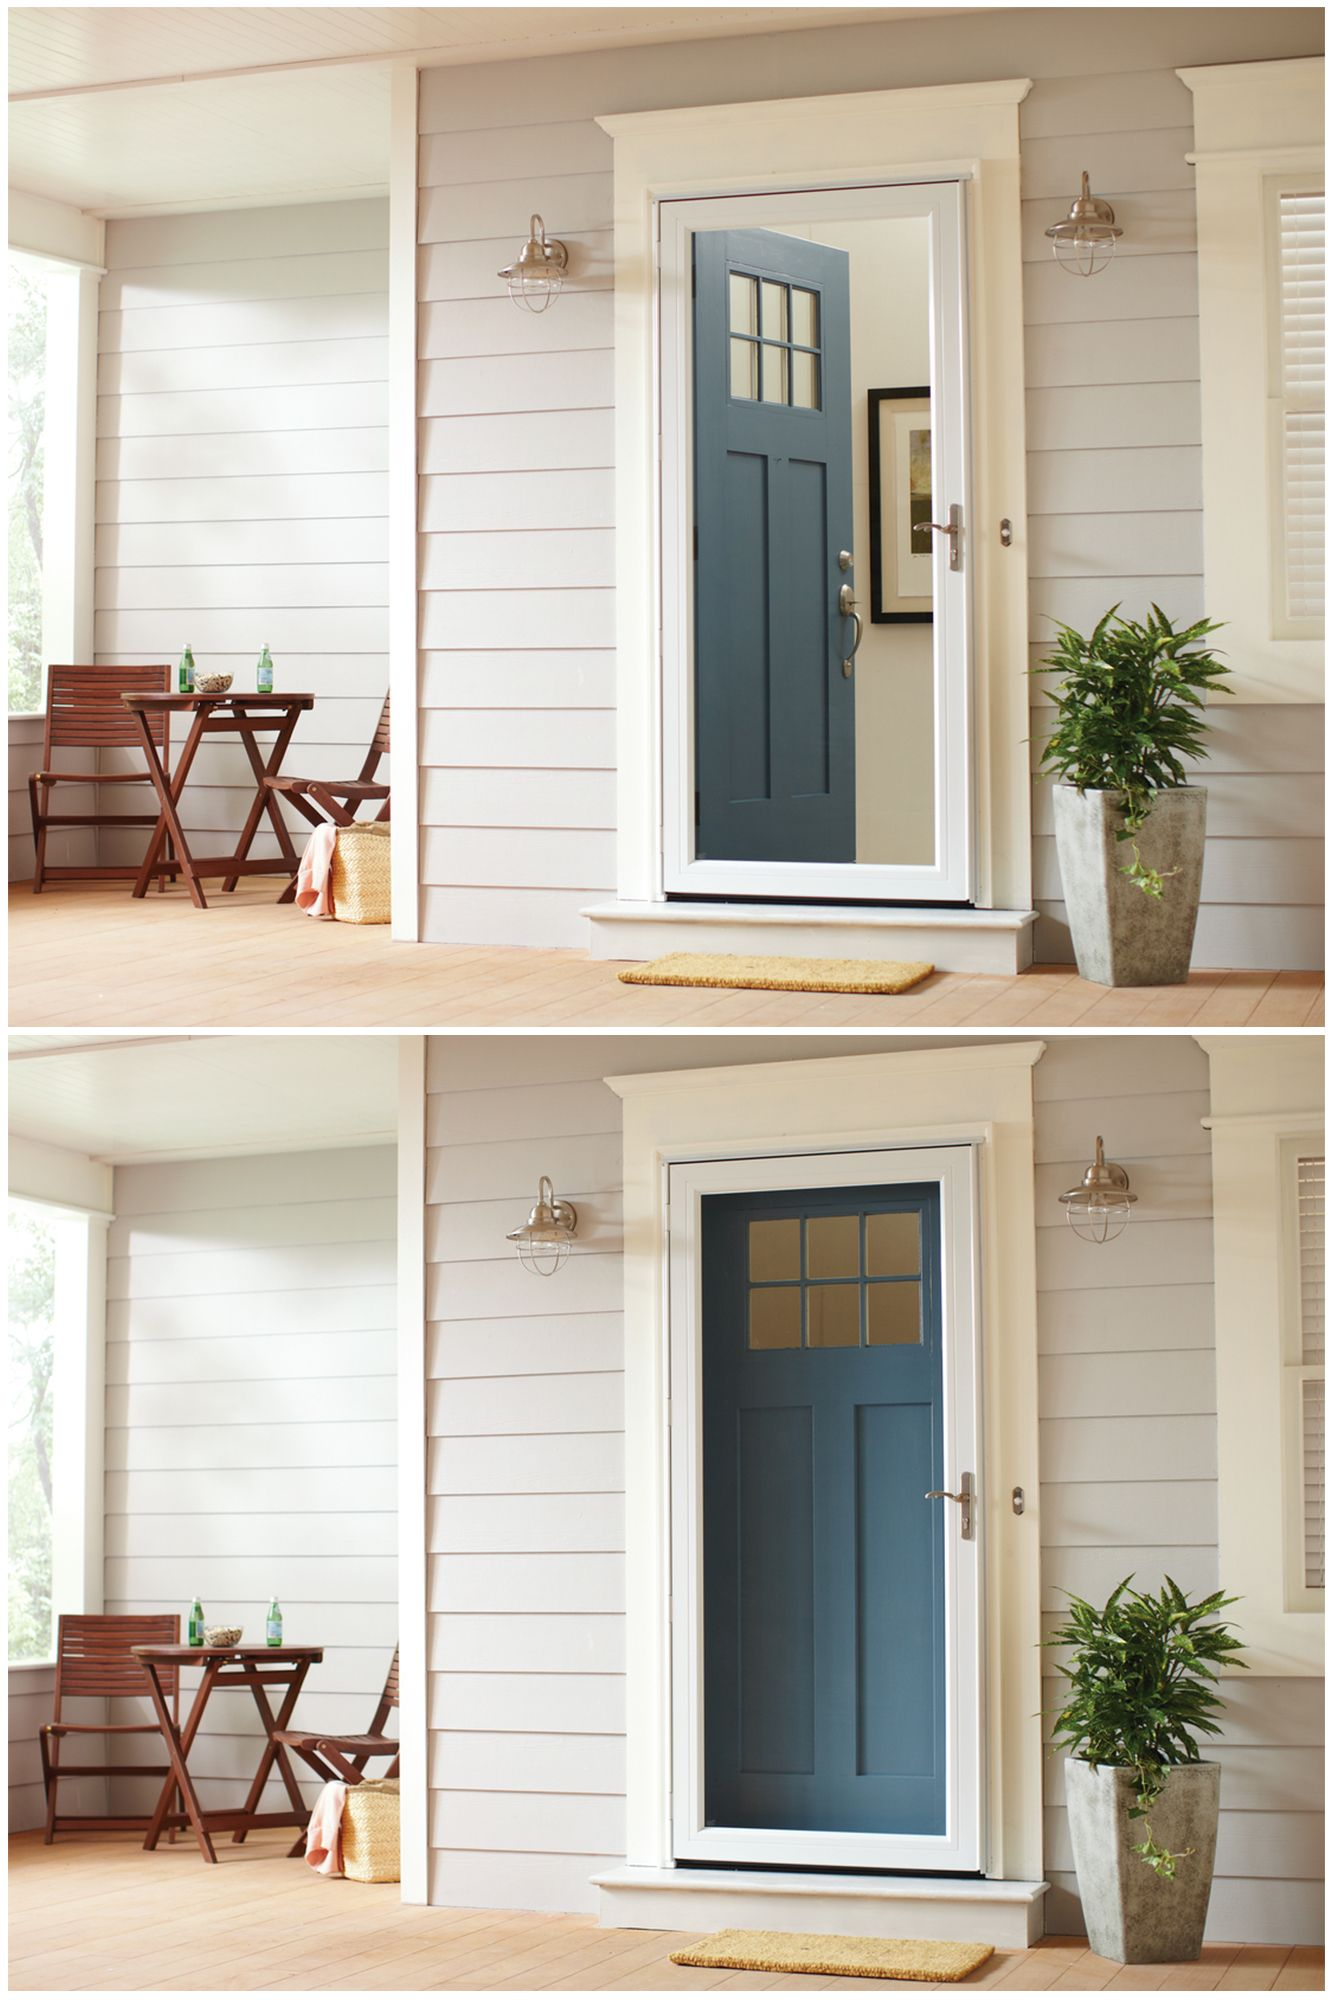 Andersen Easy Install Storm Doors Are Prepped For Quick Installation